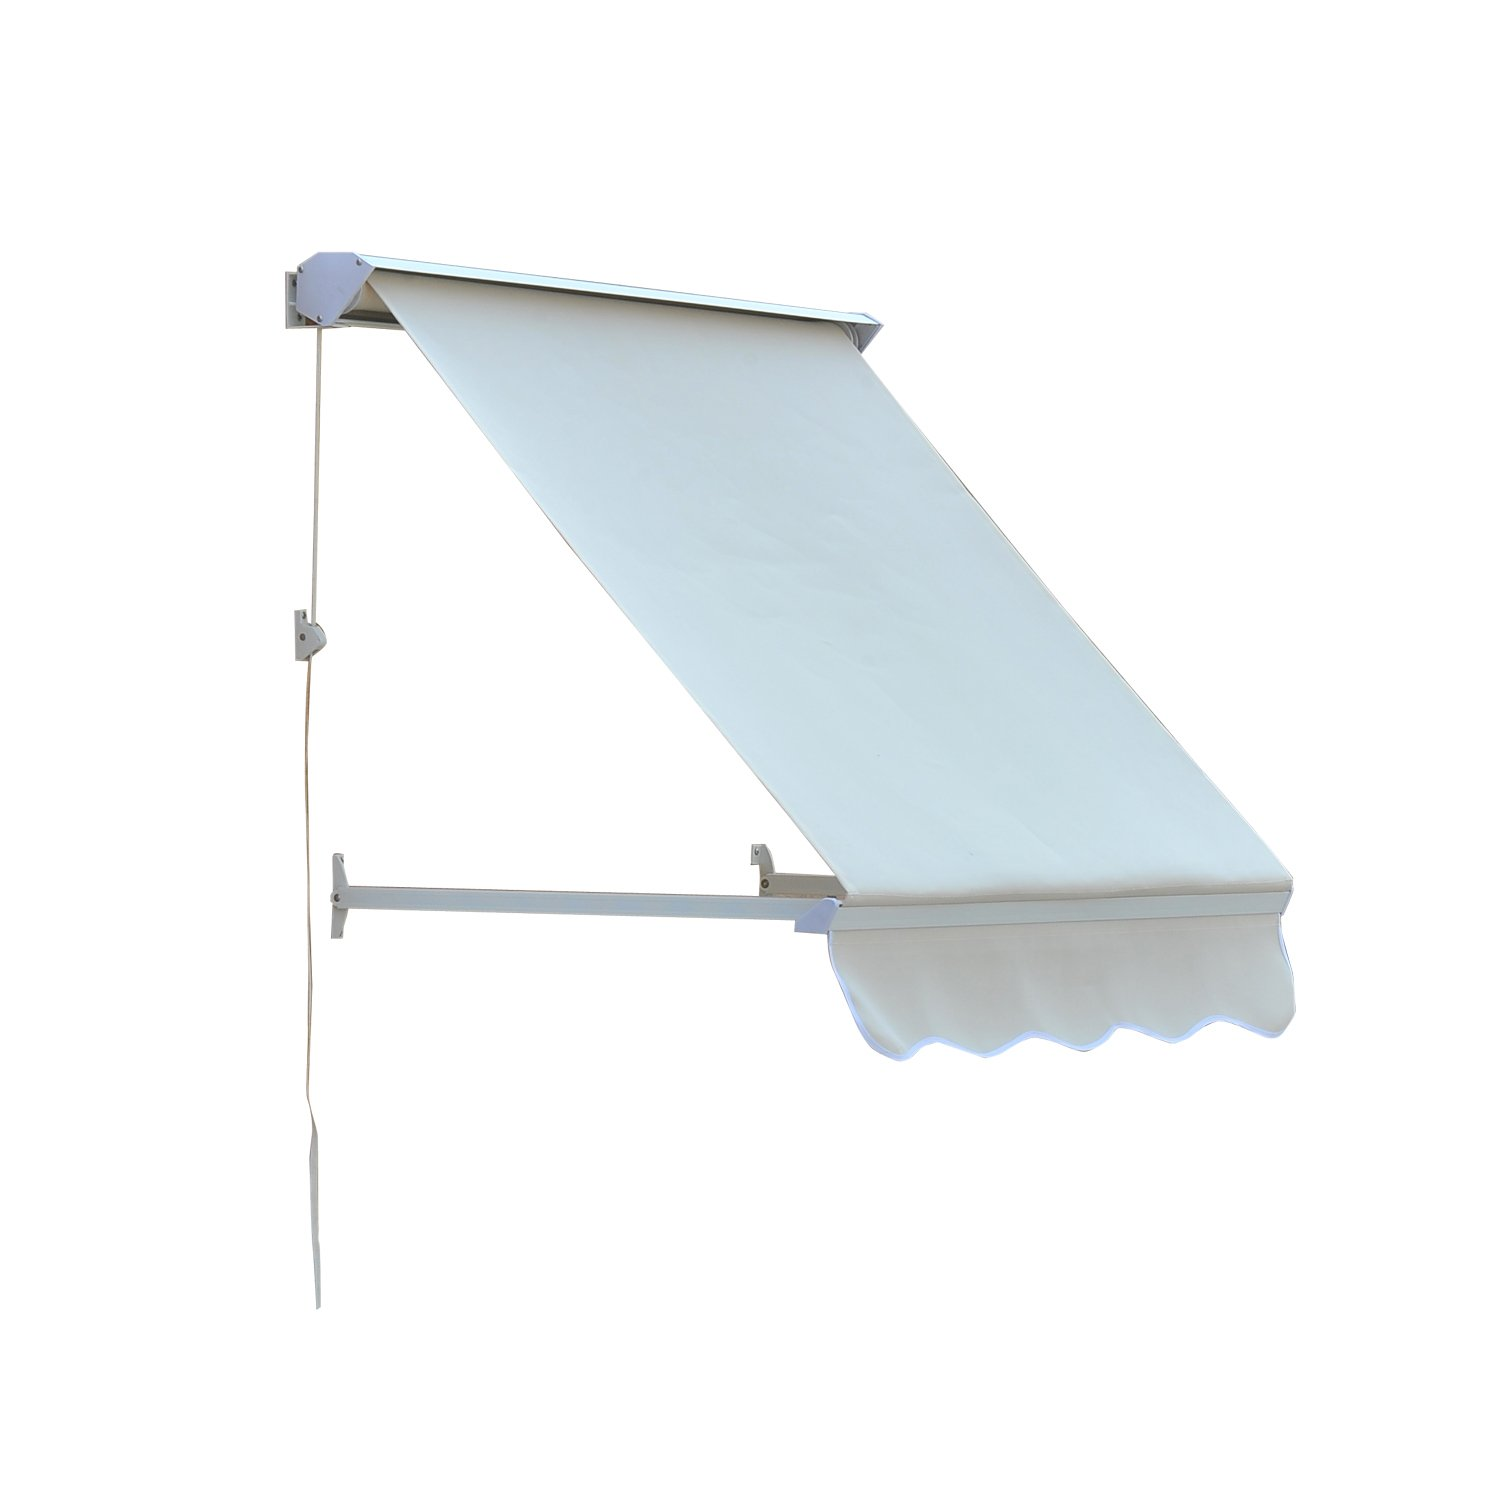 Outsunny Drop Arm Manual Retractable Window Awning, 4-Feet, Cream